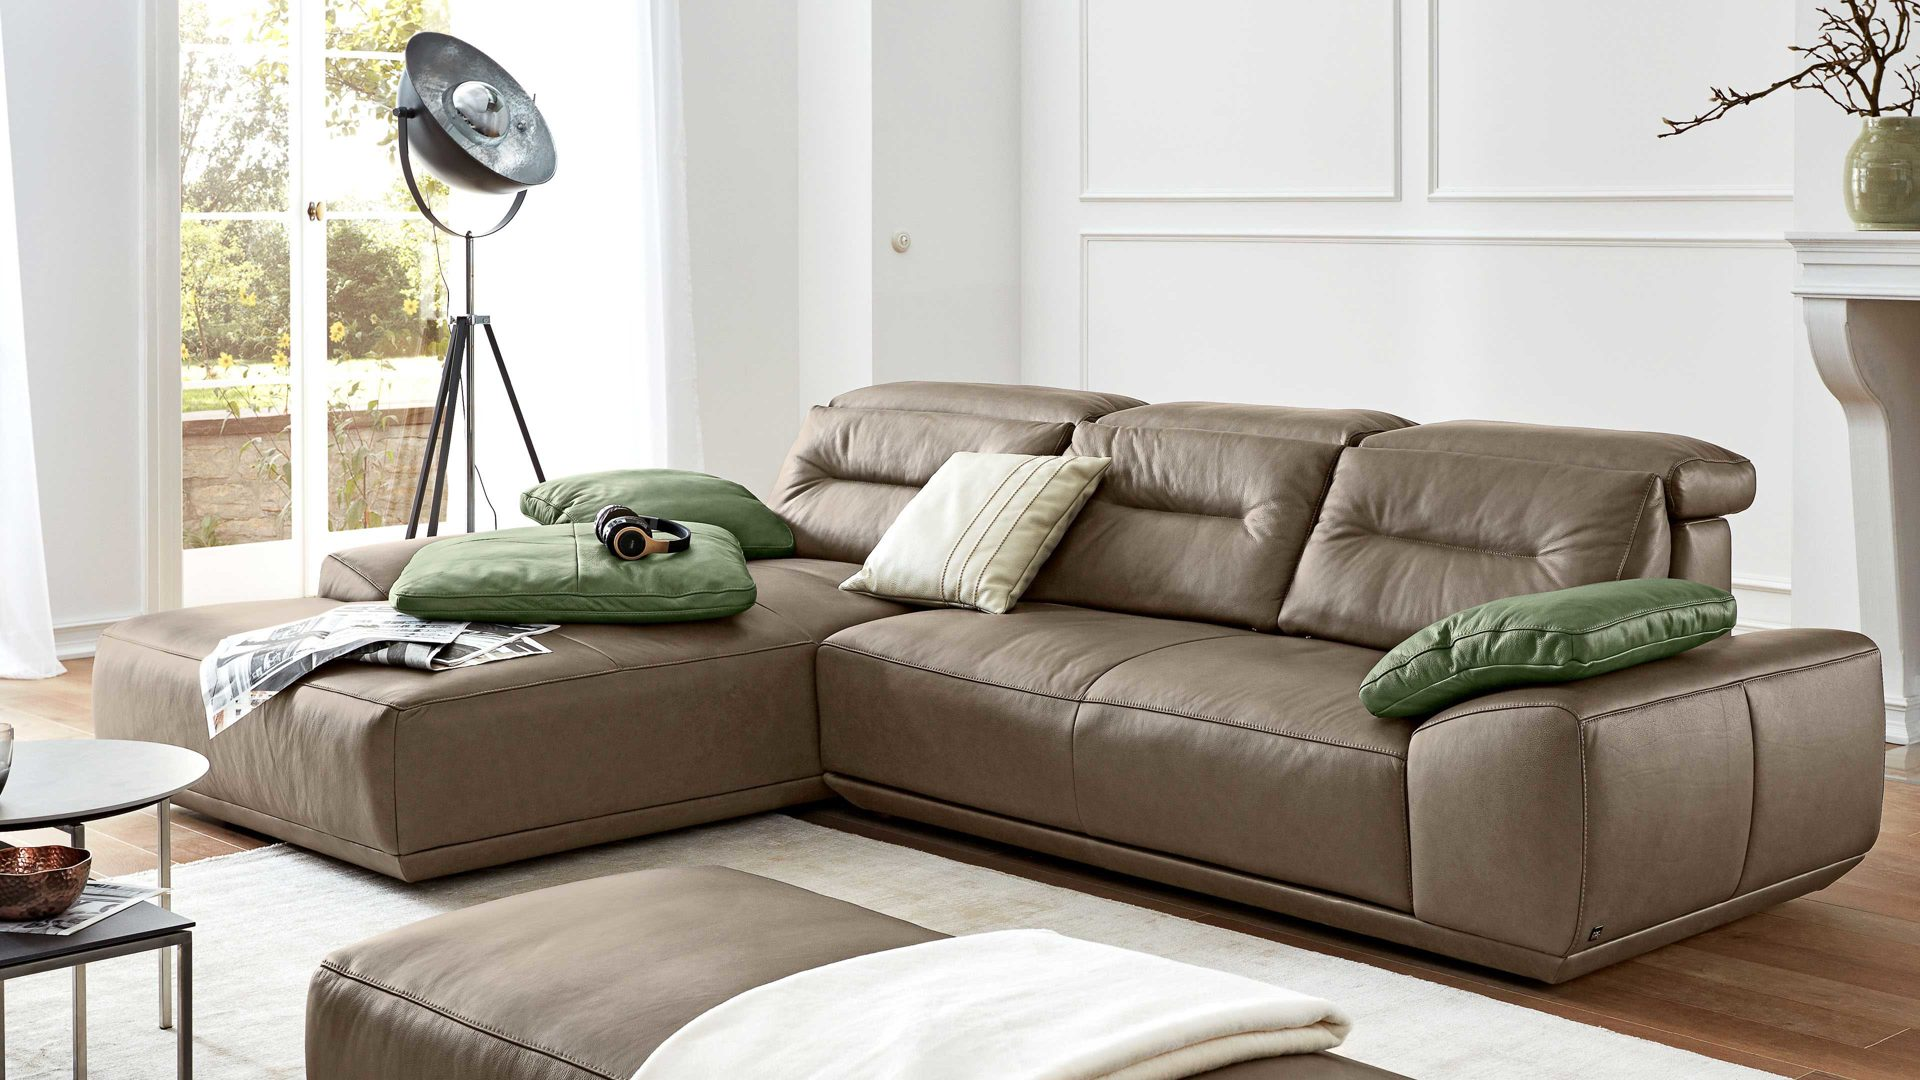 Https Www Interliving Com Online Shop Produktdetails Id1105957 Interliving Ecksofa Interliving Aus Leder In Braun Interliving Sofa Serie 4000 Eckkombination Braunes Leder Z3923 Mushroom Schenkelmass Ca 209 X 310 Cm Guenstiger Html